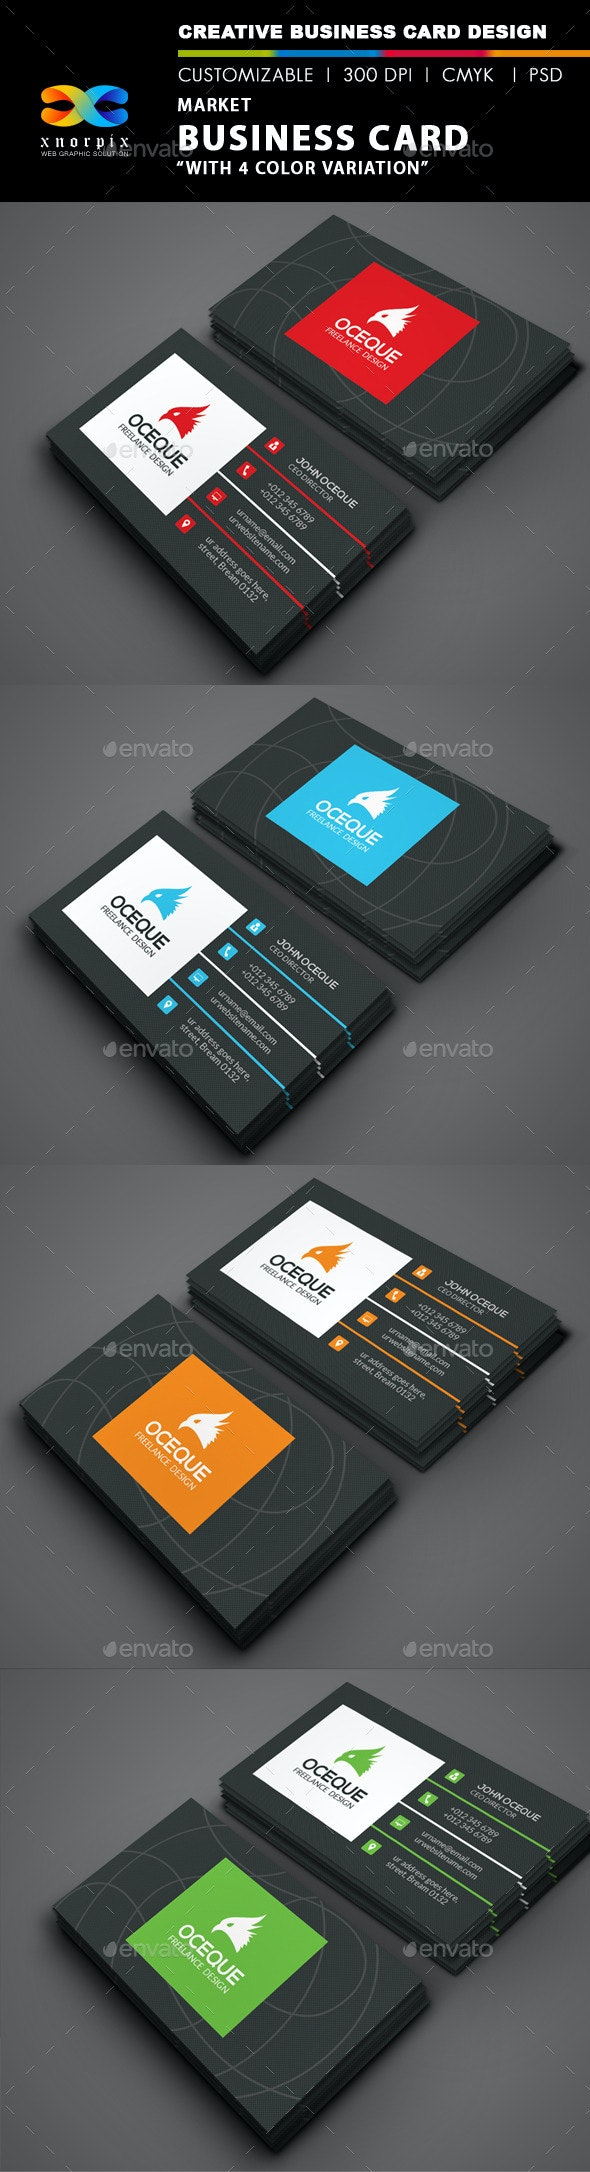 Market Business Card - Corporate Business Cards